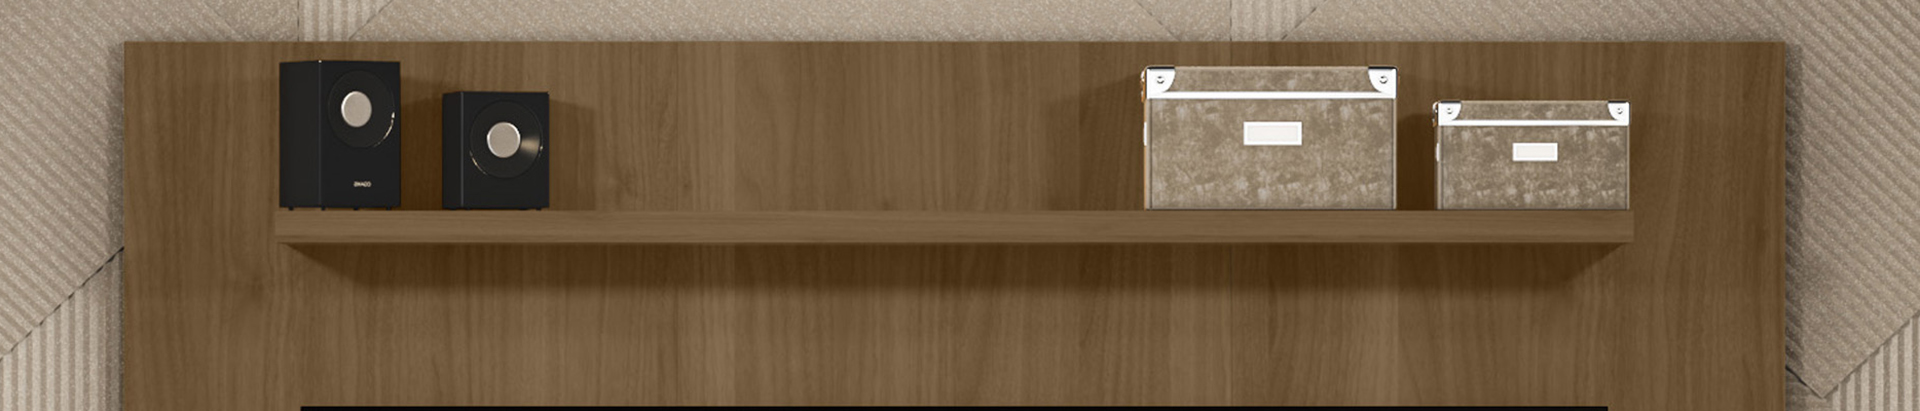 Painel Home New Caju 1.7